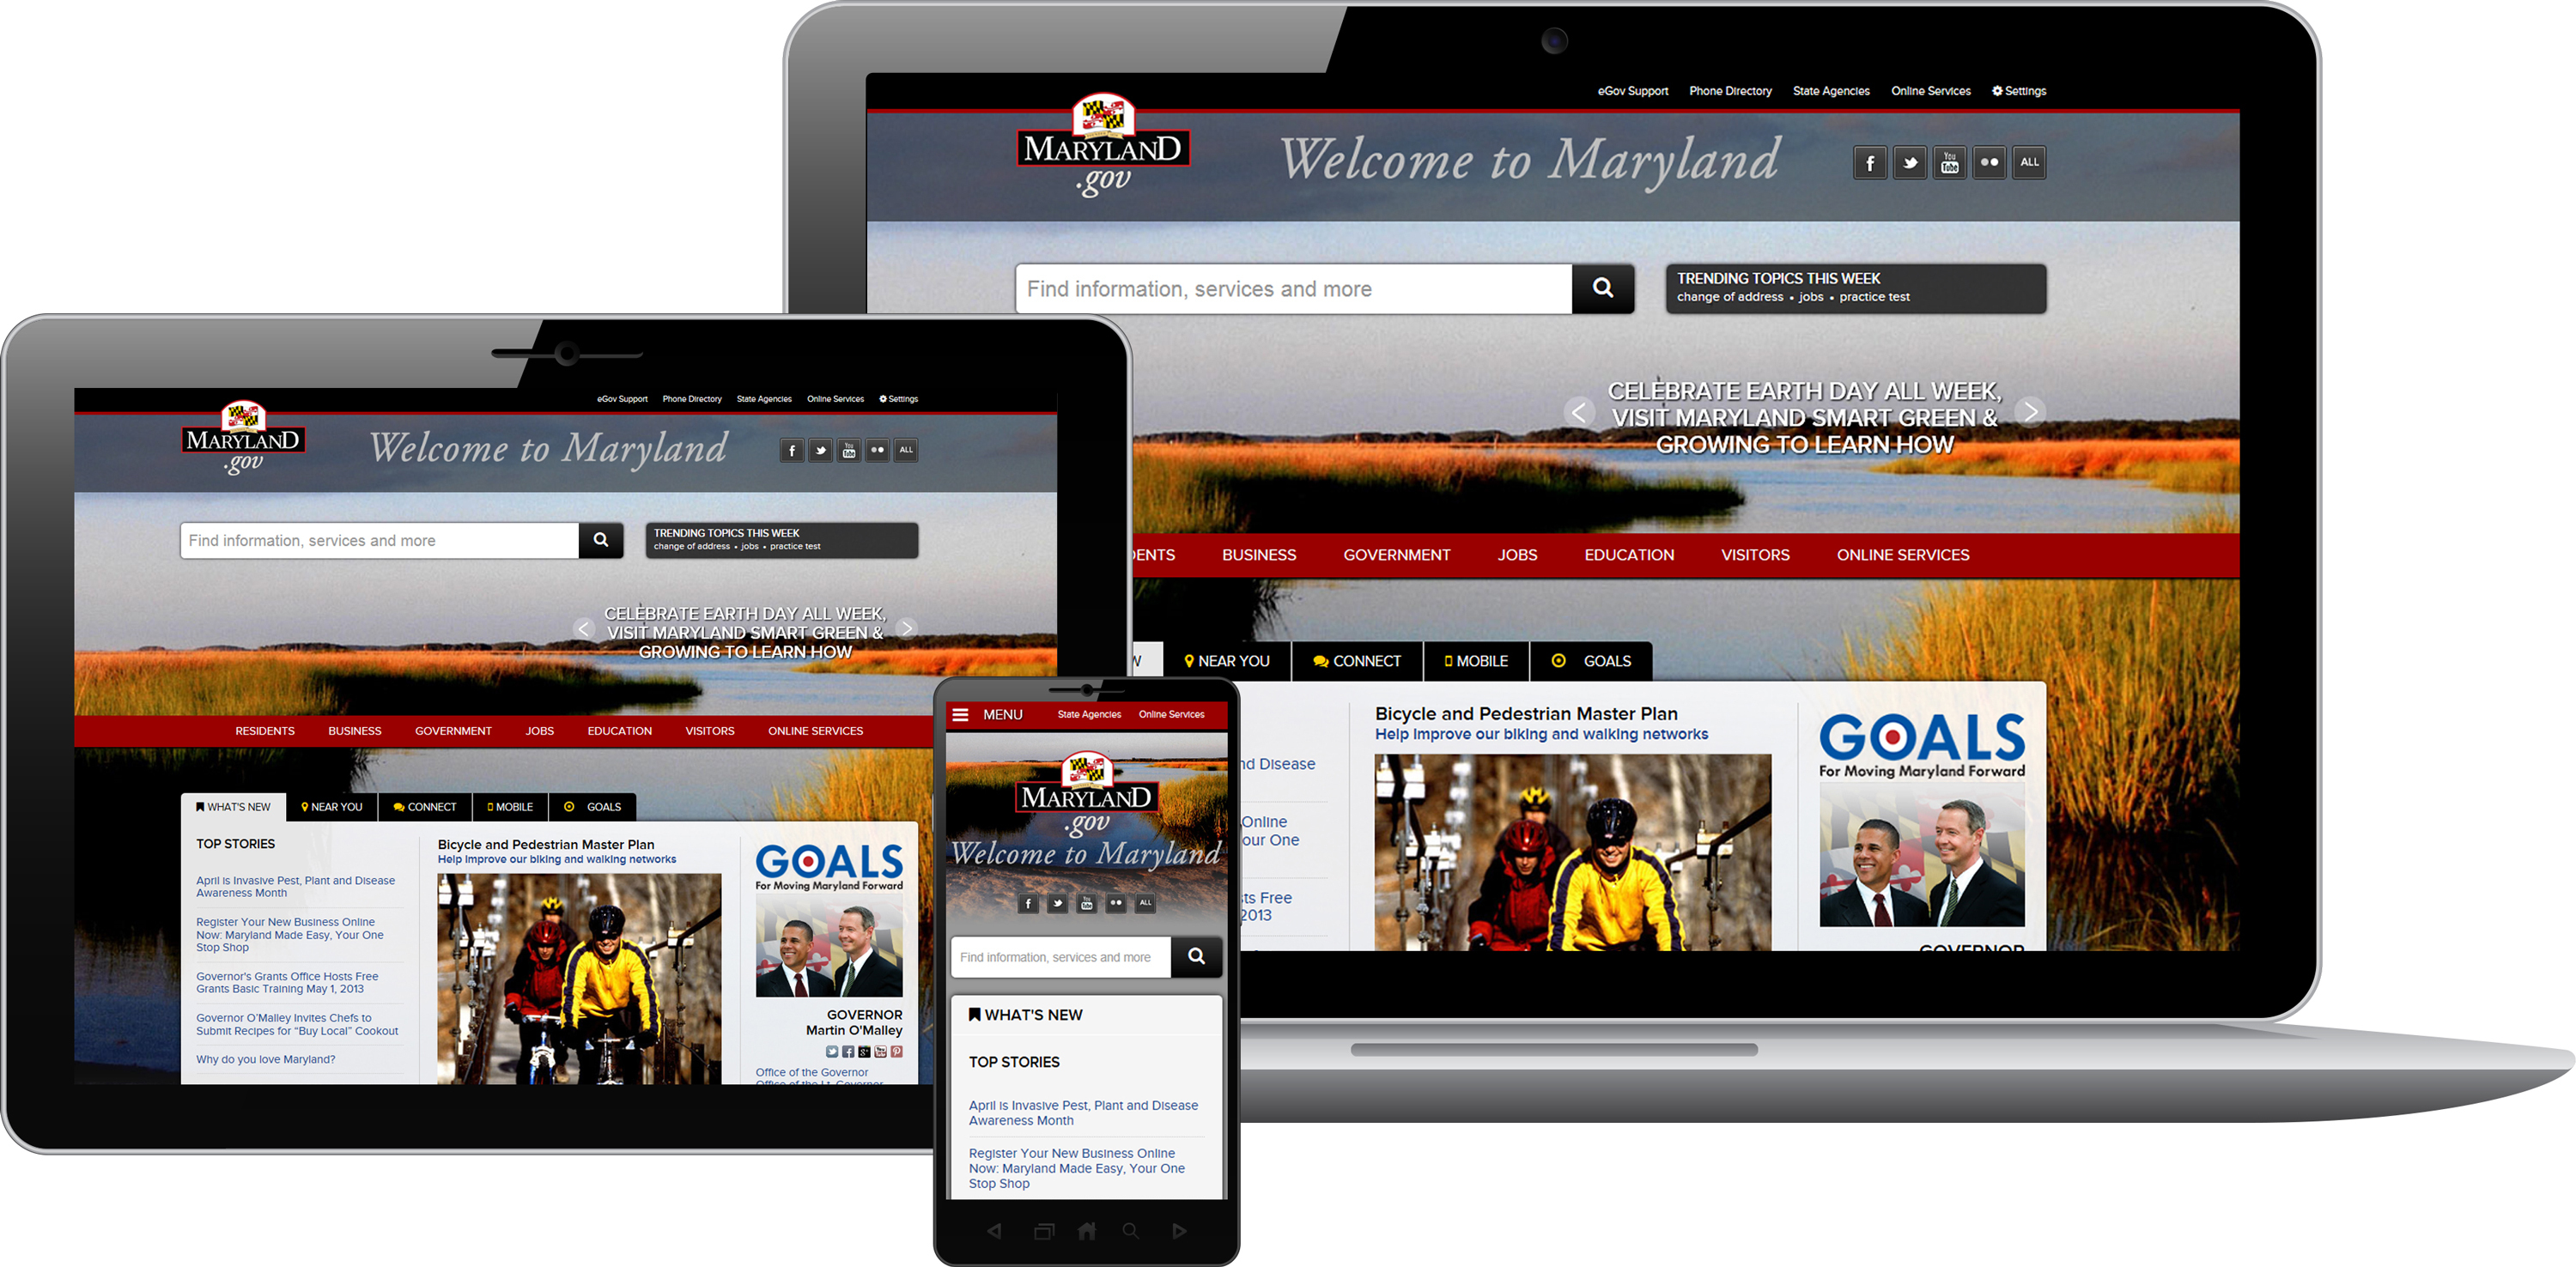 Maryland.gov Wins Best in Class 2013 Interactive Media Award (Photo: Business Wire)